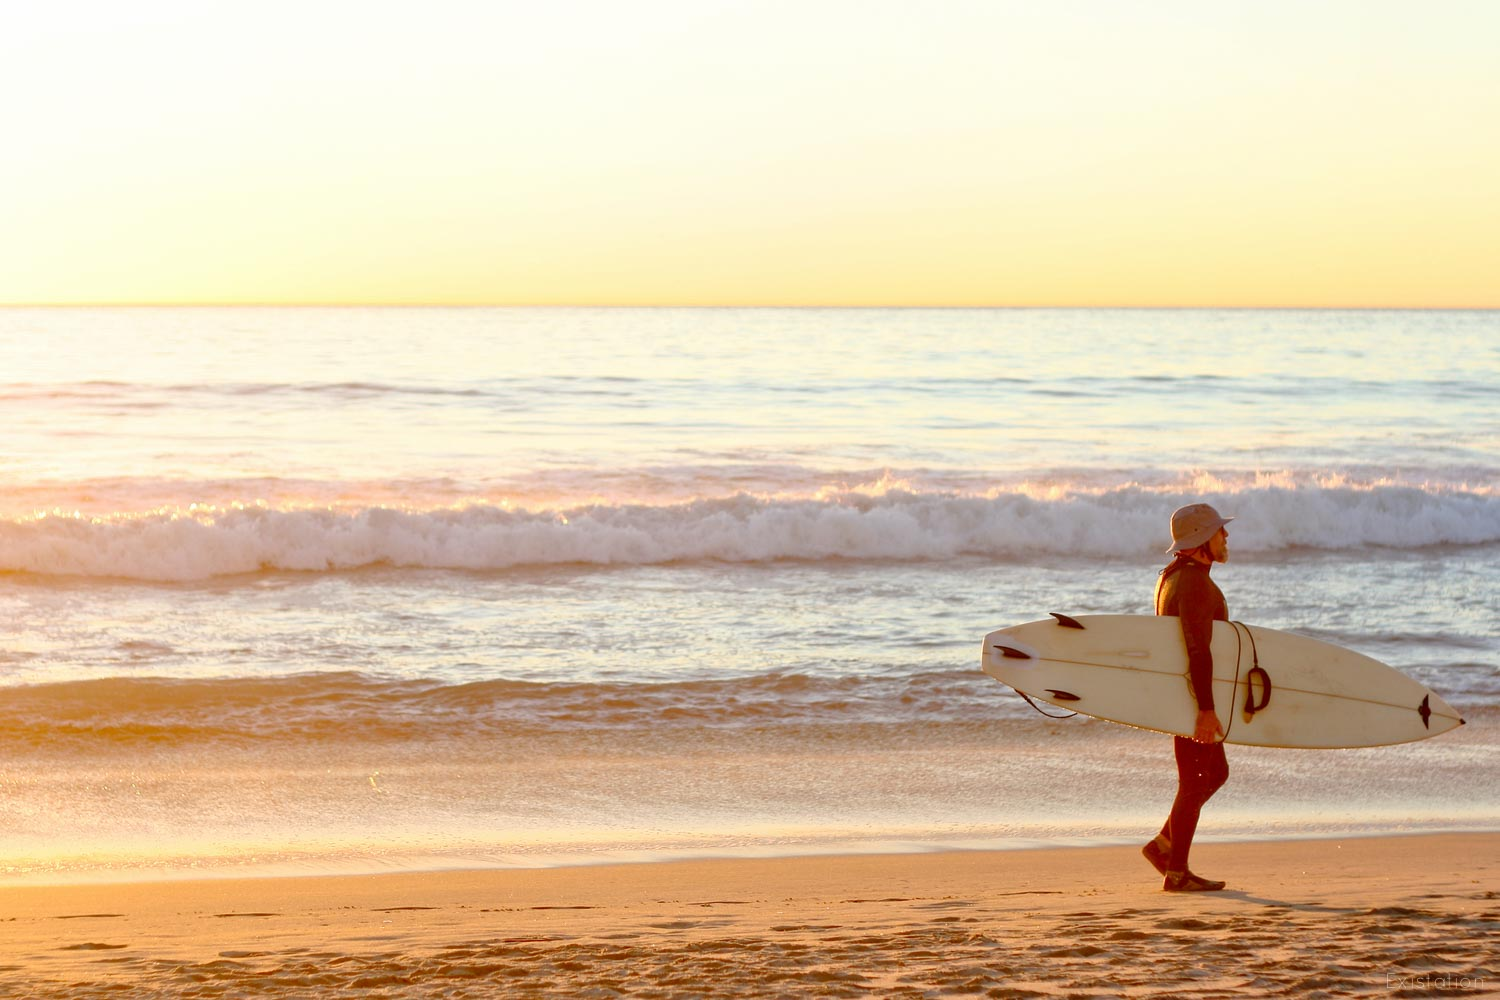 surfer+sunset+southern+california.jpg